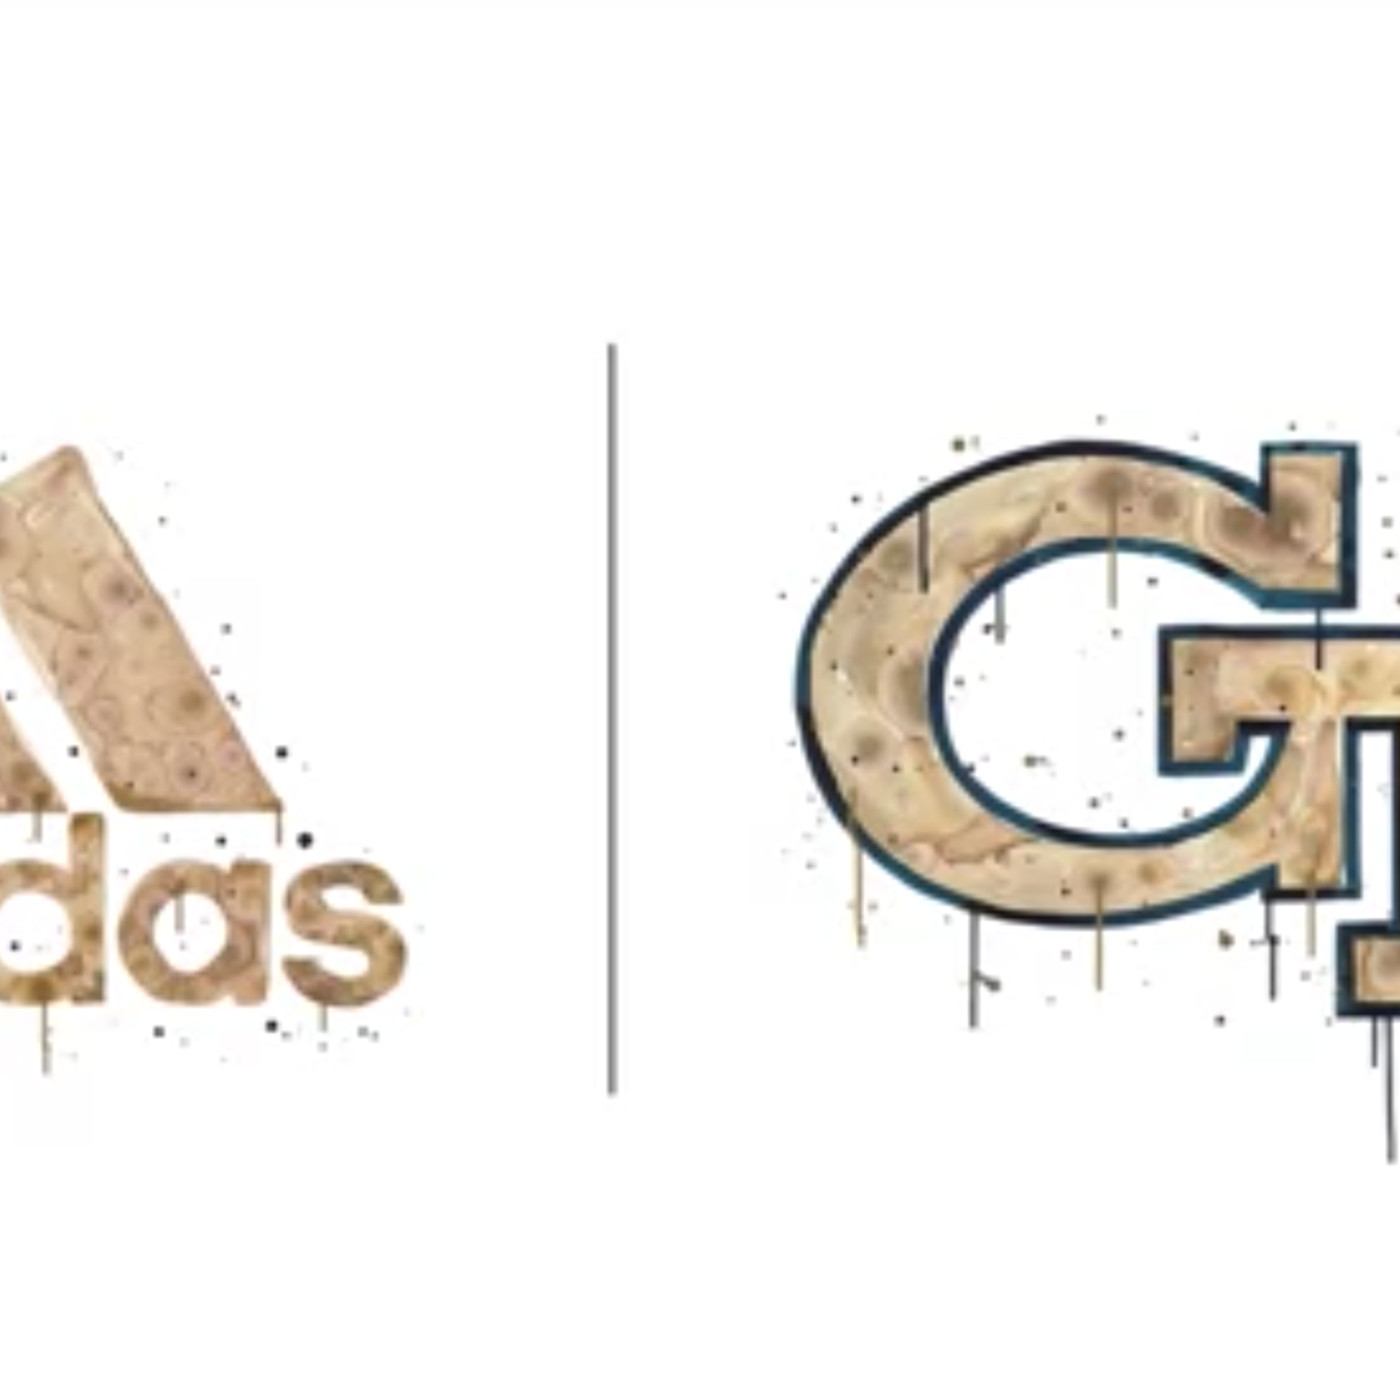 Georgia Tech Adidas jerseys  congratulating Yellow Jackets for leaving  Russell - SBNation.com 0ccf51cb7cfc5